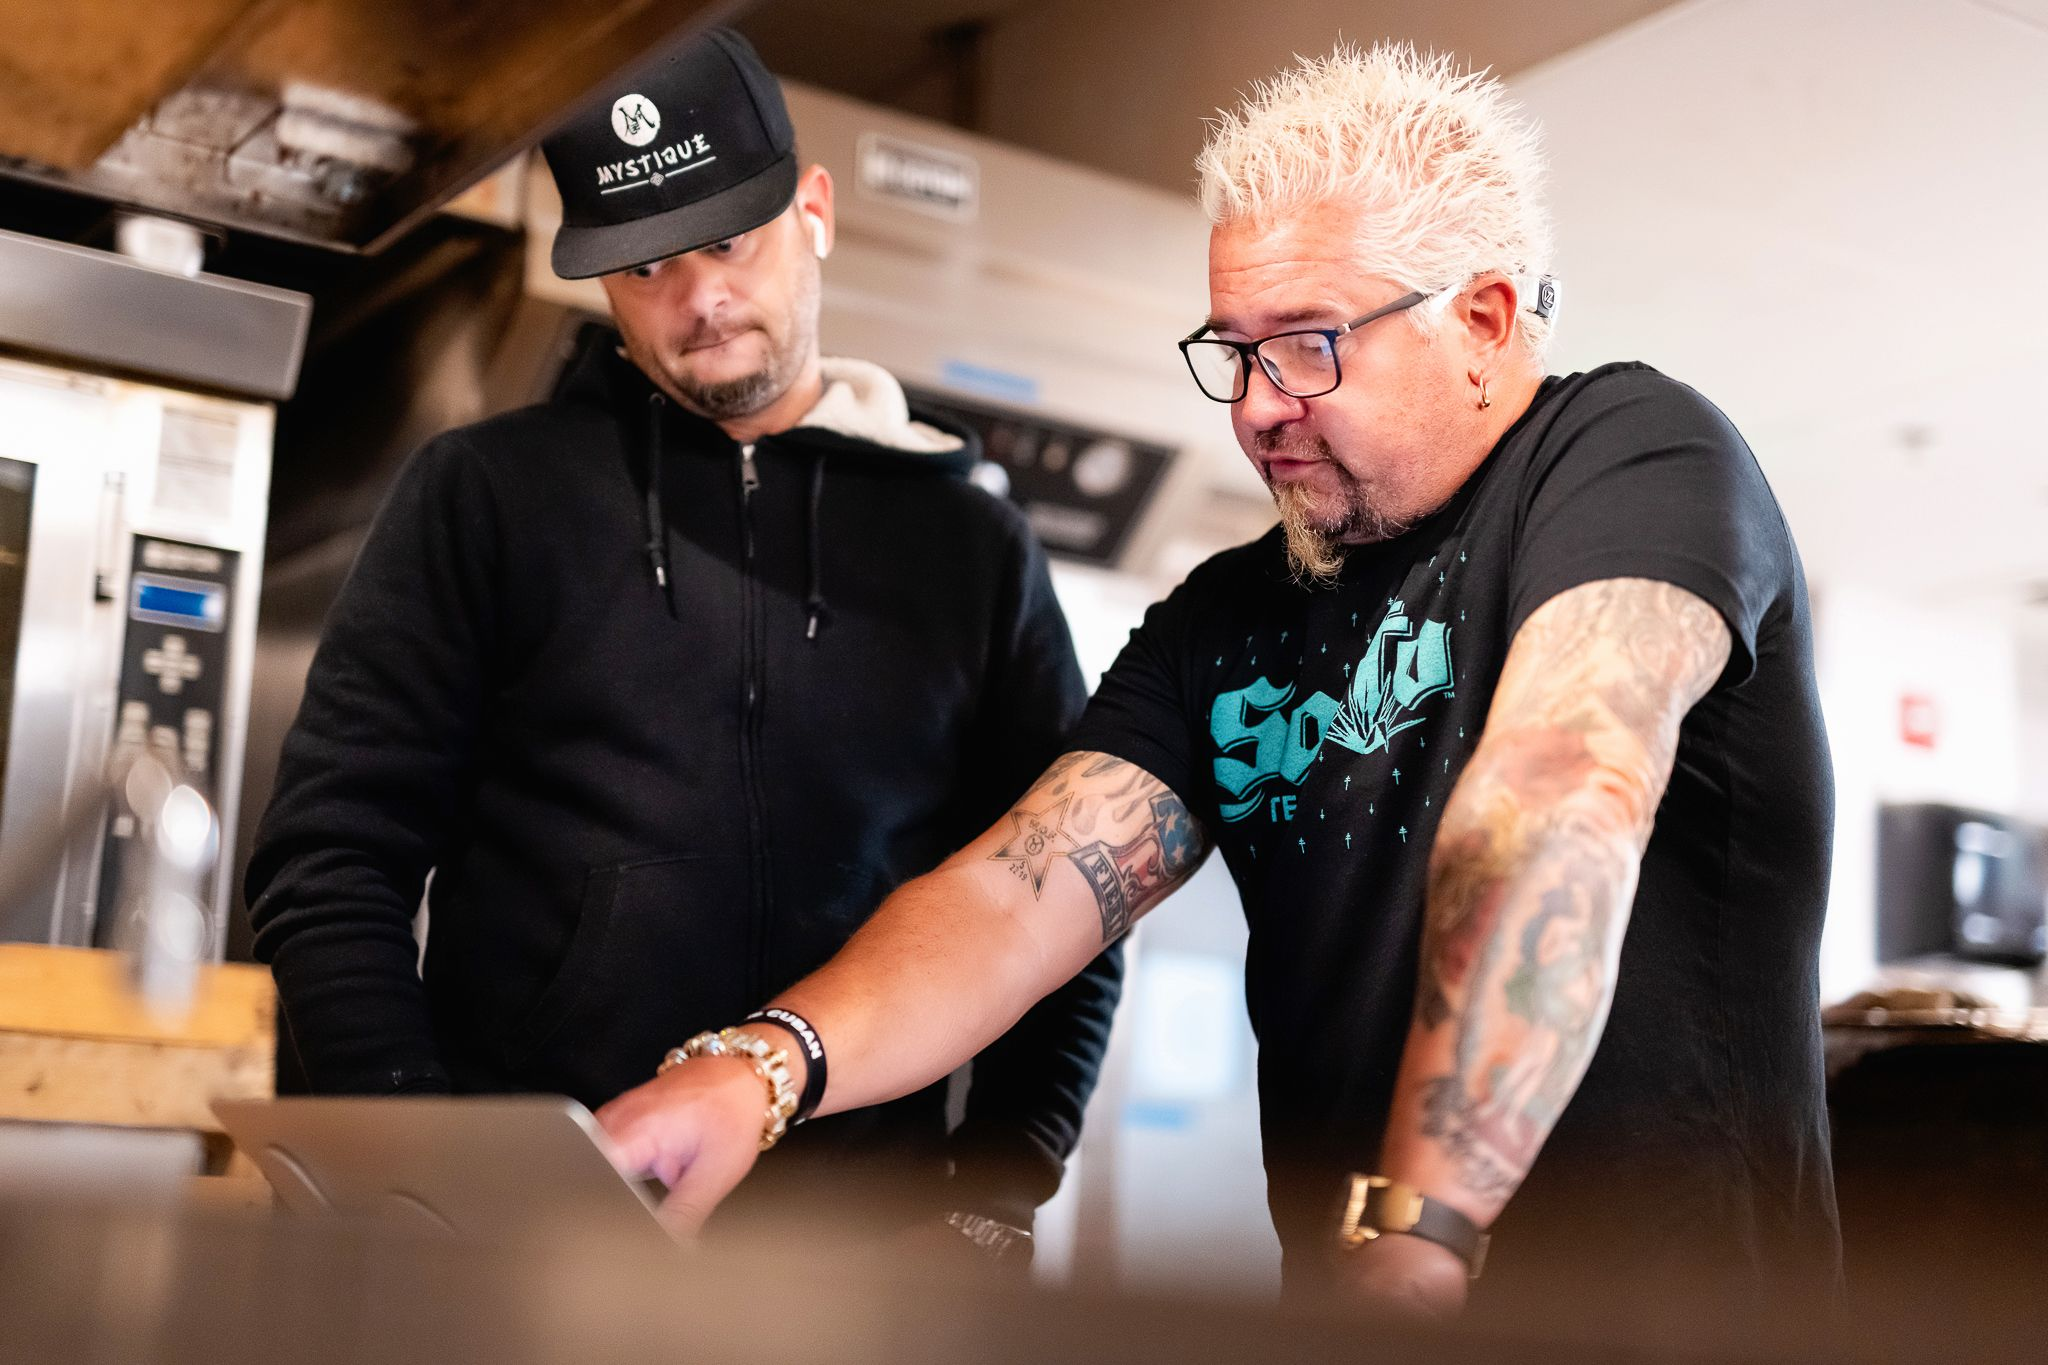 Guy Fieri chats with the chef at Guy Fieri's Tequila Cocina.